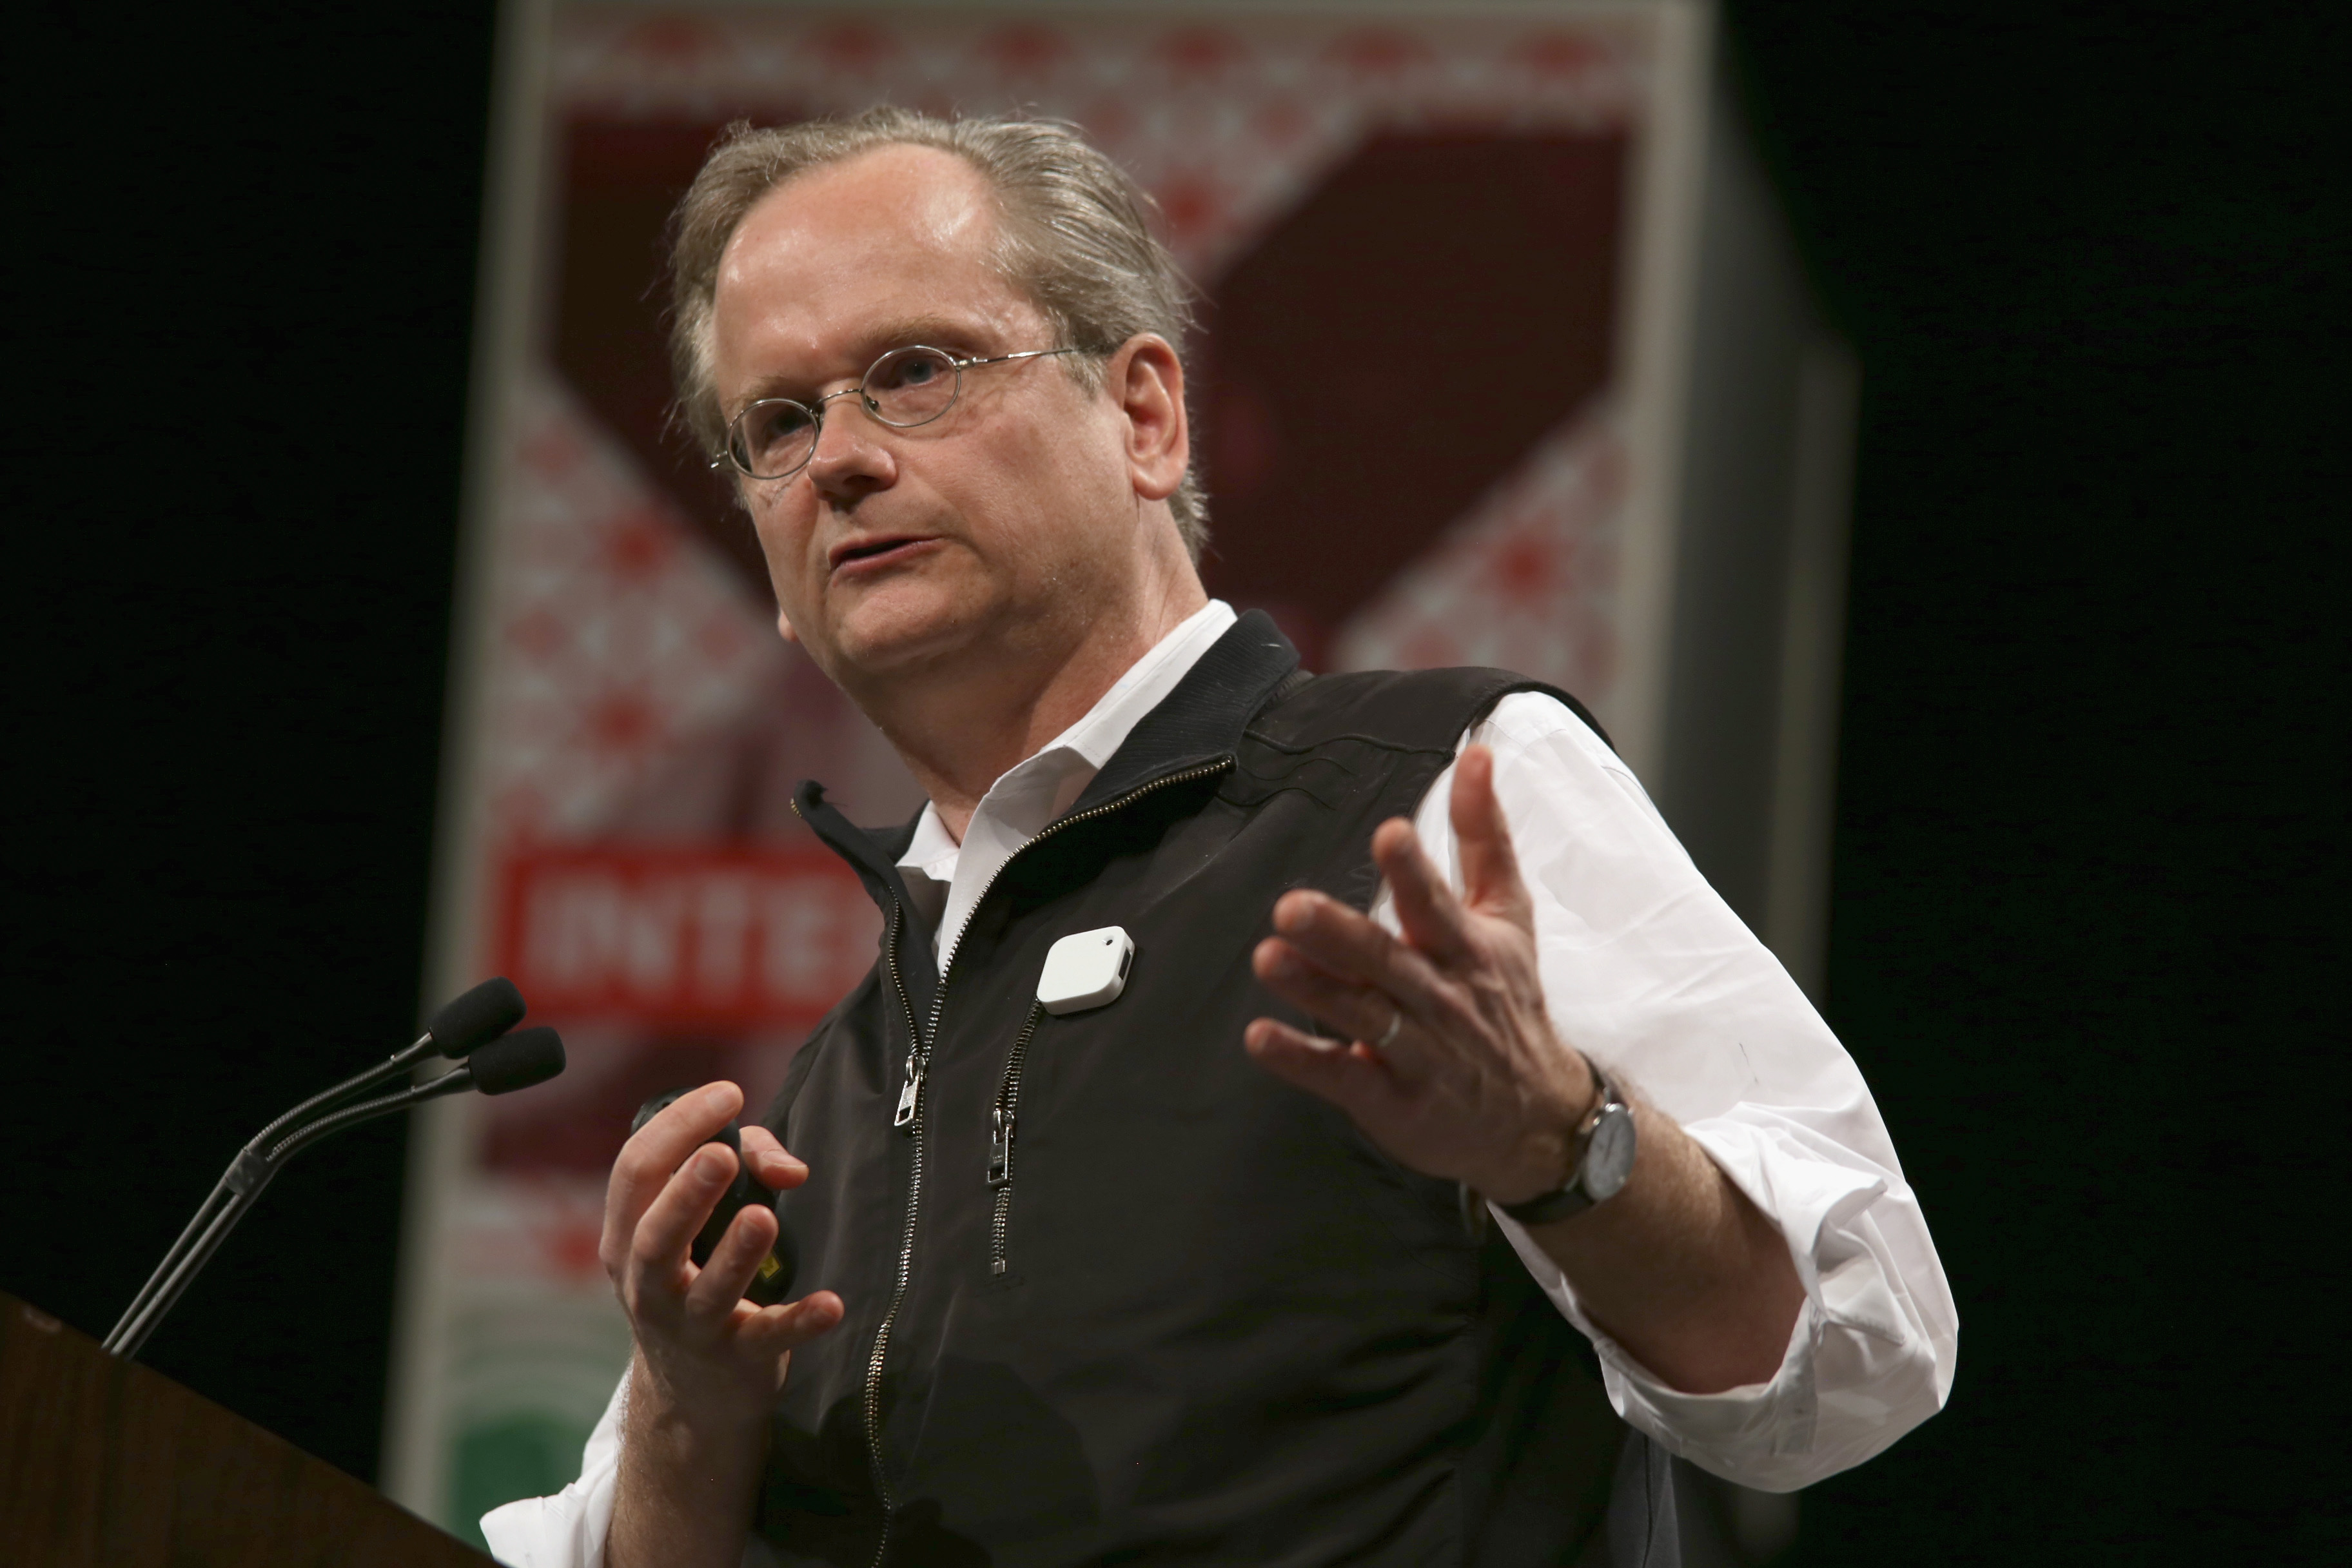 Summary of Lawrence Lessig's